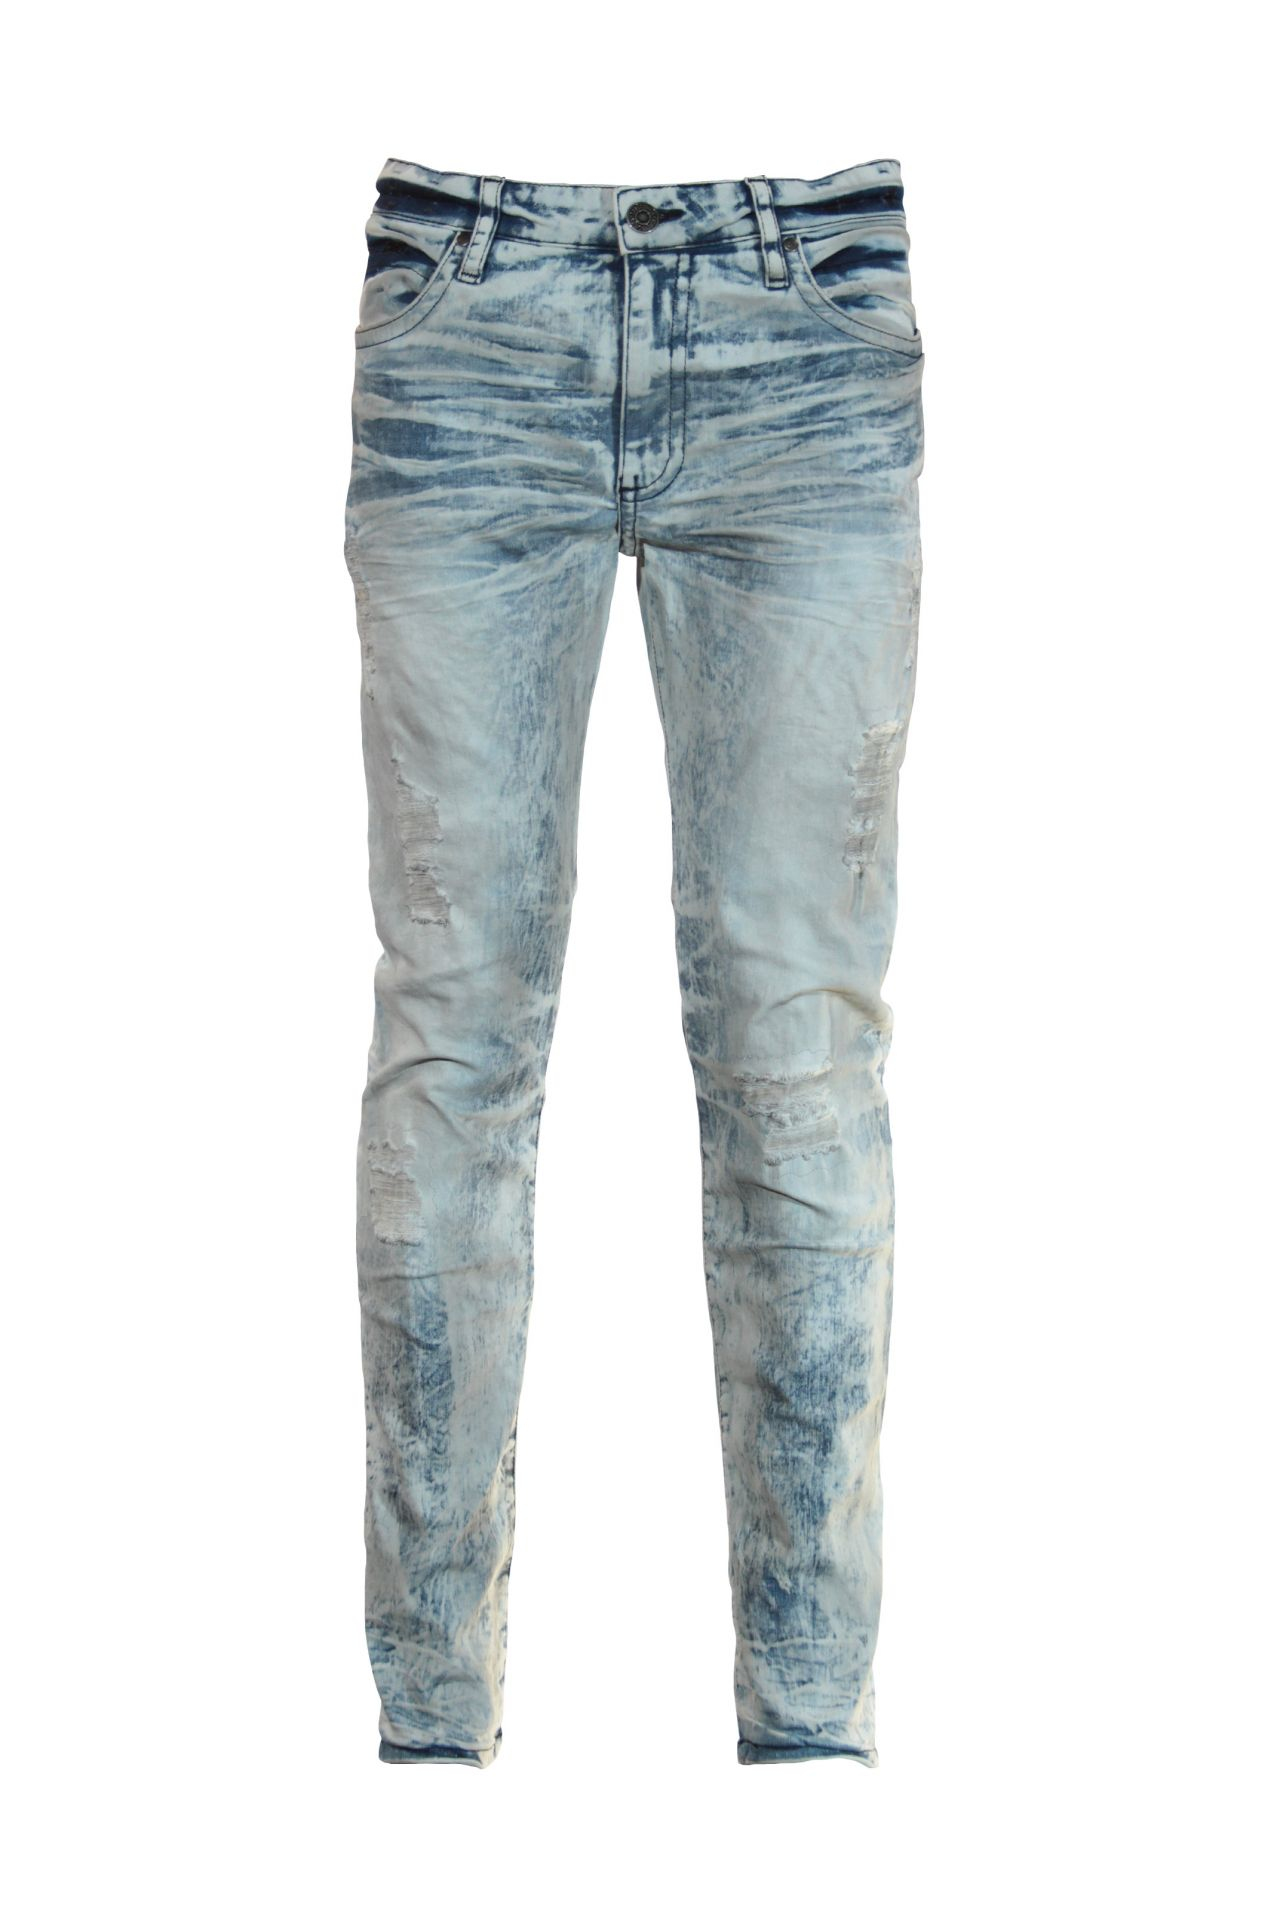 SKINNY JEAN IN MINERAL MEDIUM BROKEN BACKING WITH SAPPHIRE SW